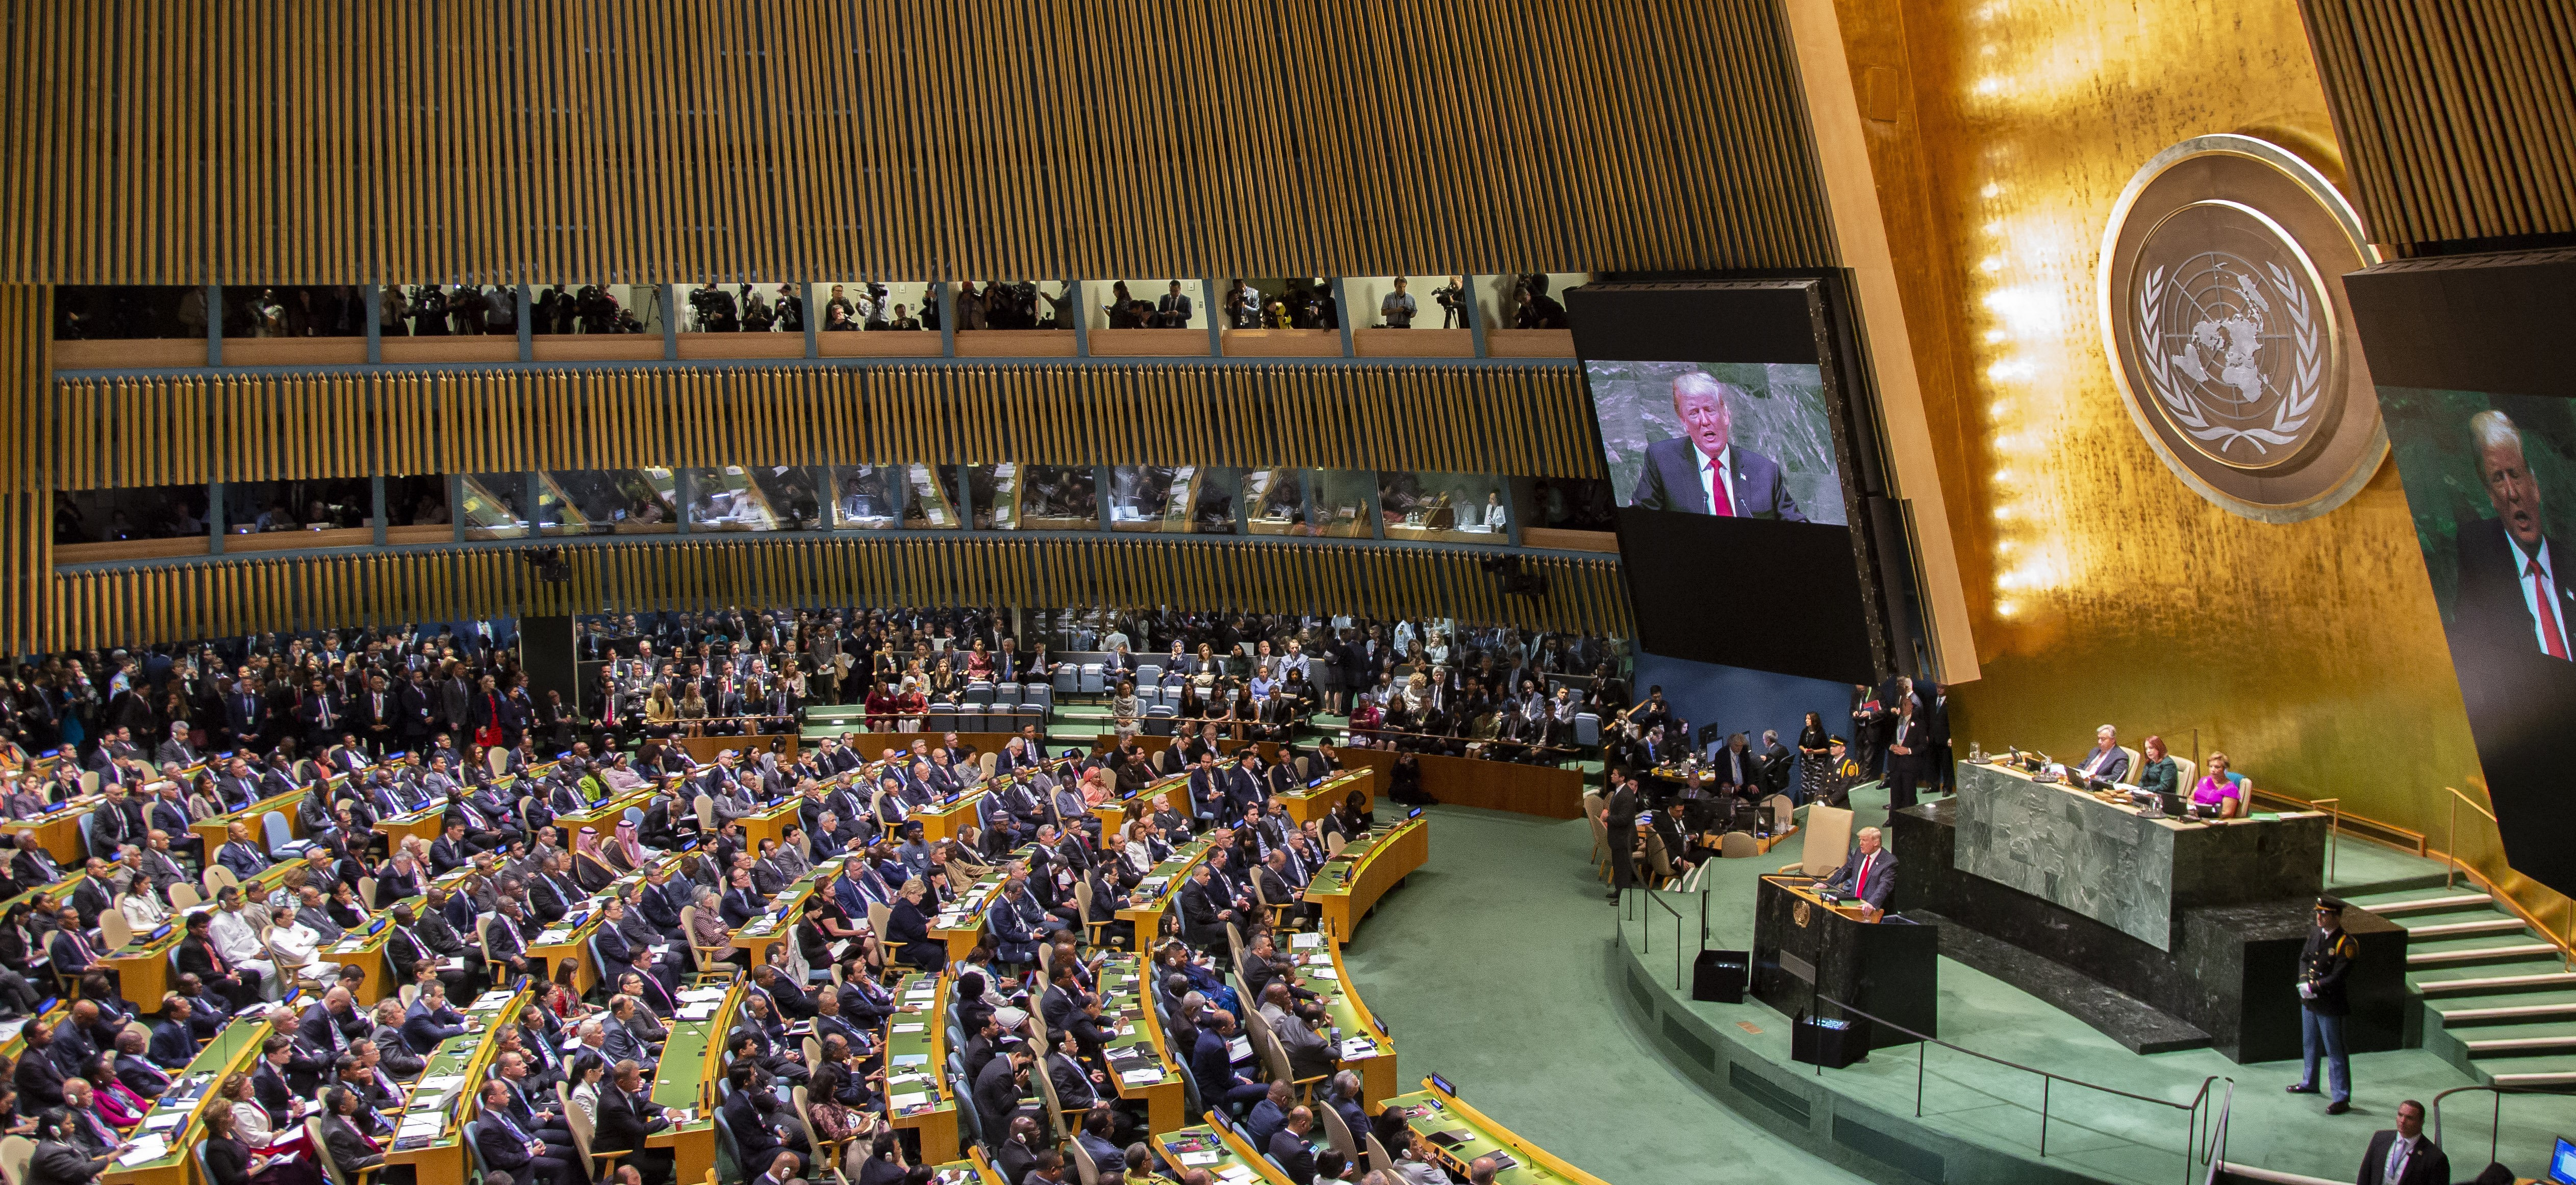 President Trump addresses the 73rd session of the United Nations General Assembly. [UN Image]